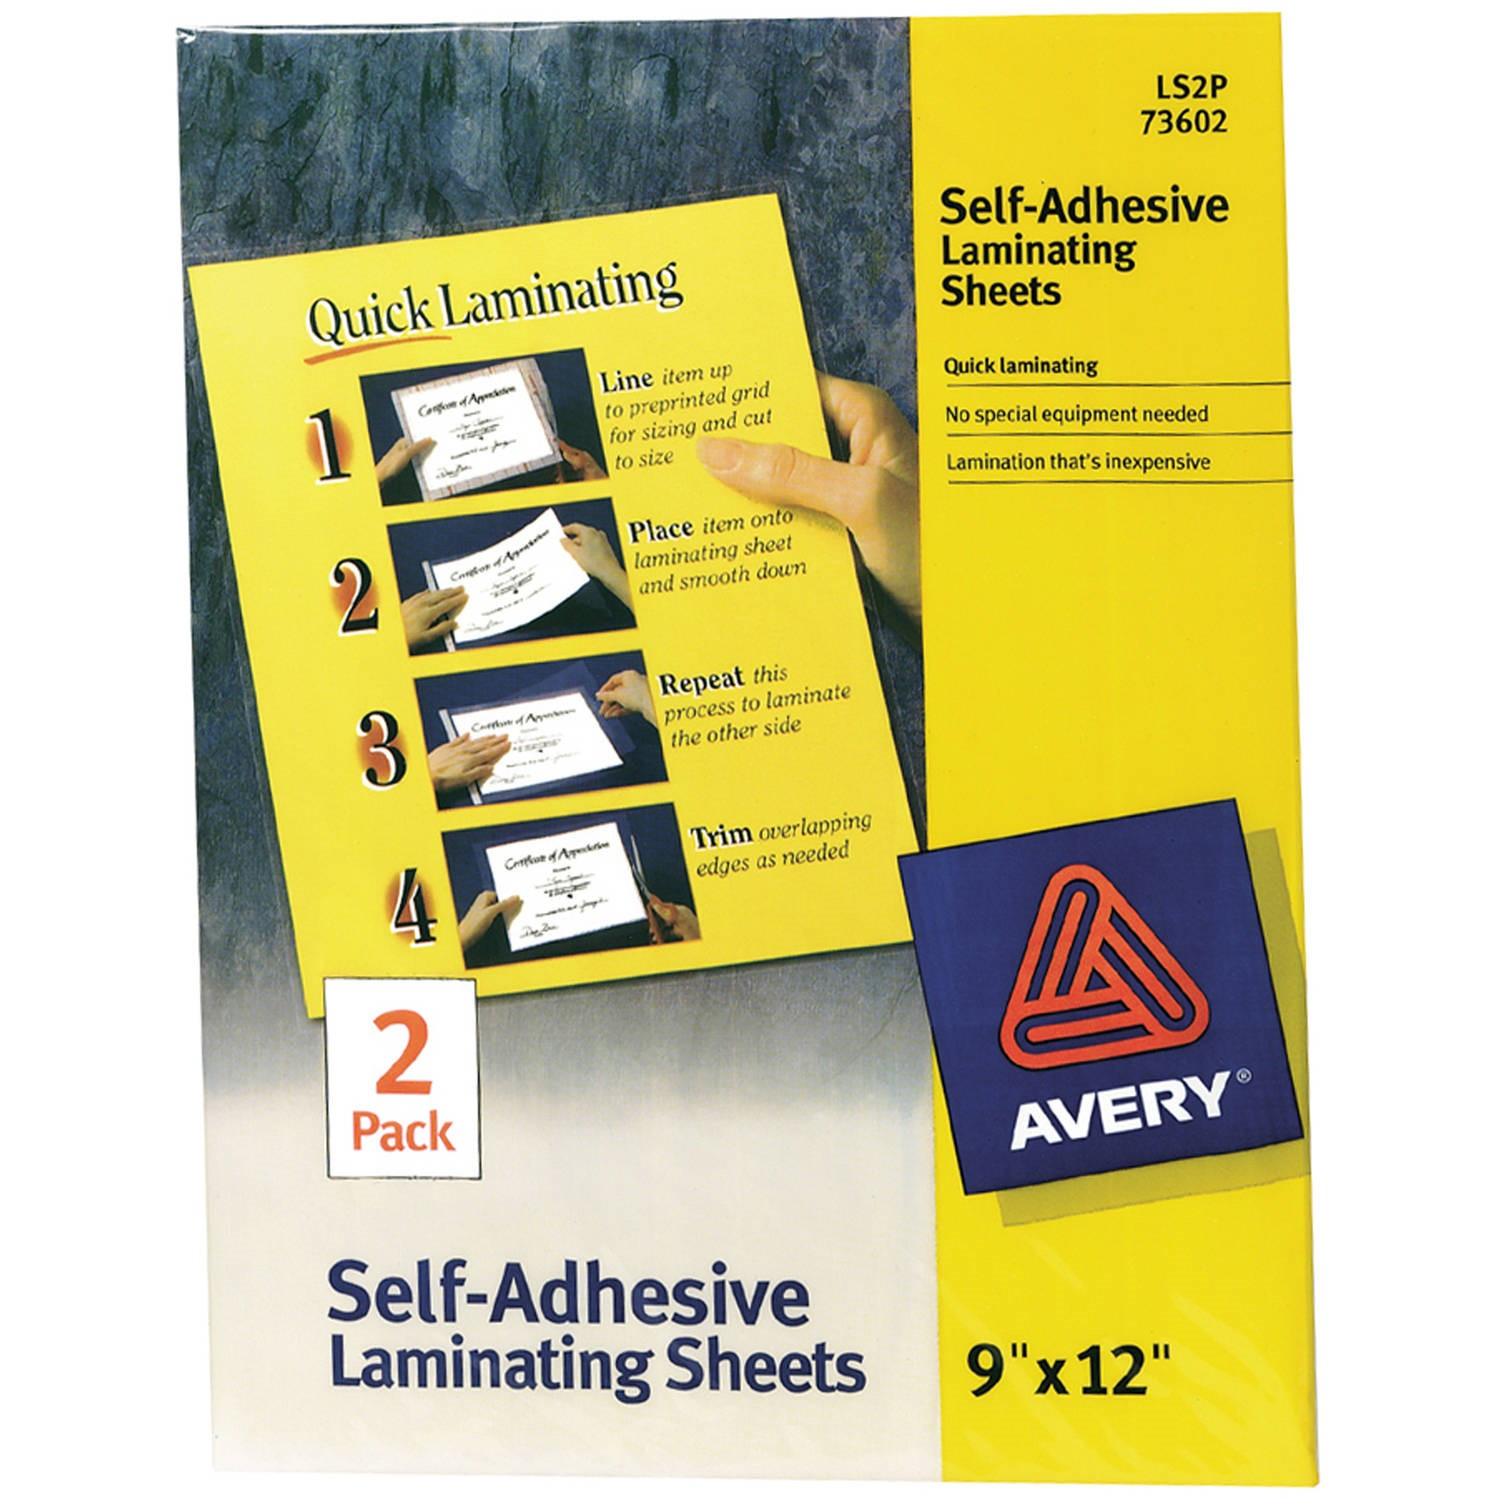 "(4 Pack) Avery Self-Adhesive Laminating Sheets 73602, 9"" x 12"", Pack of 2"